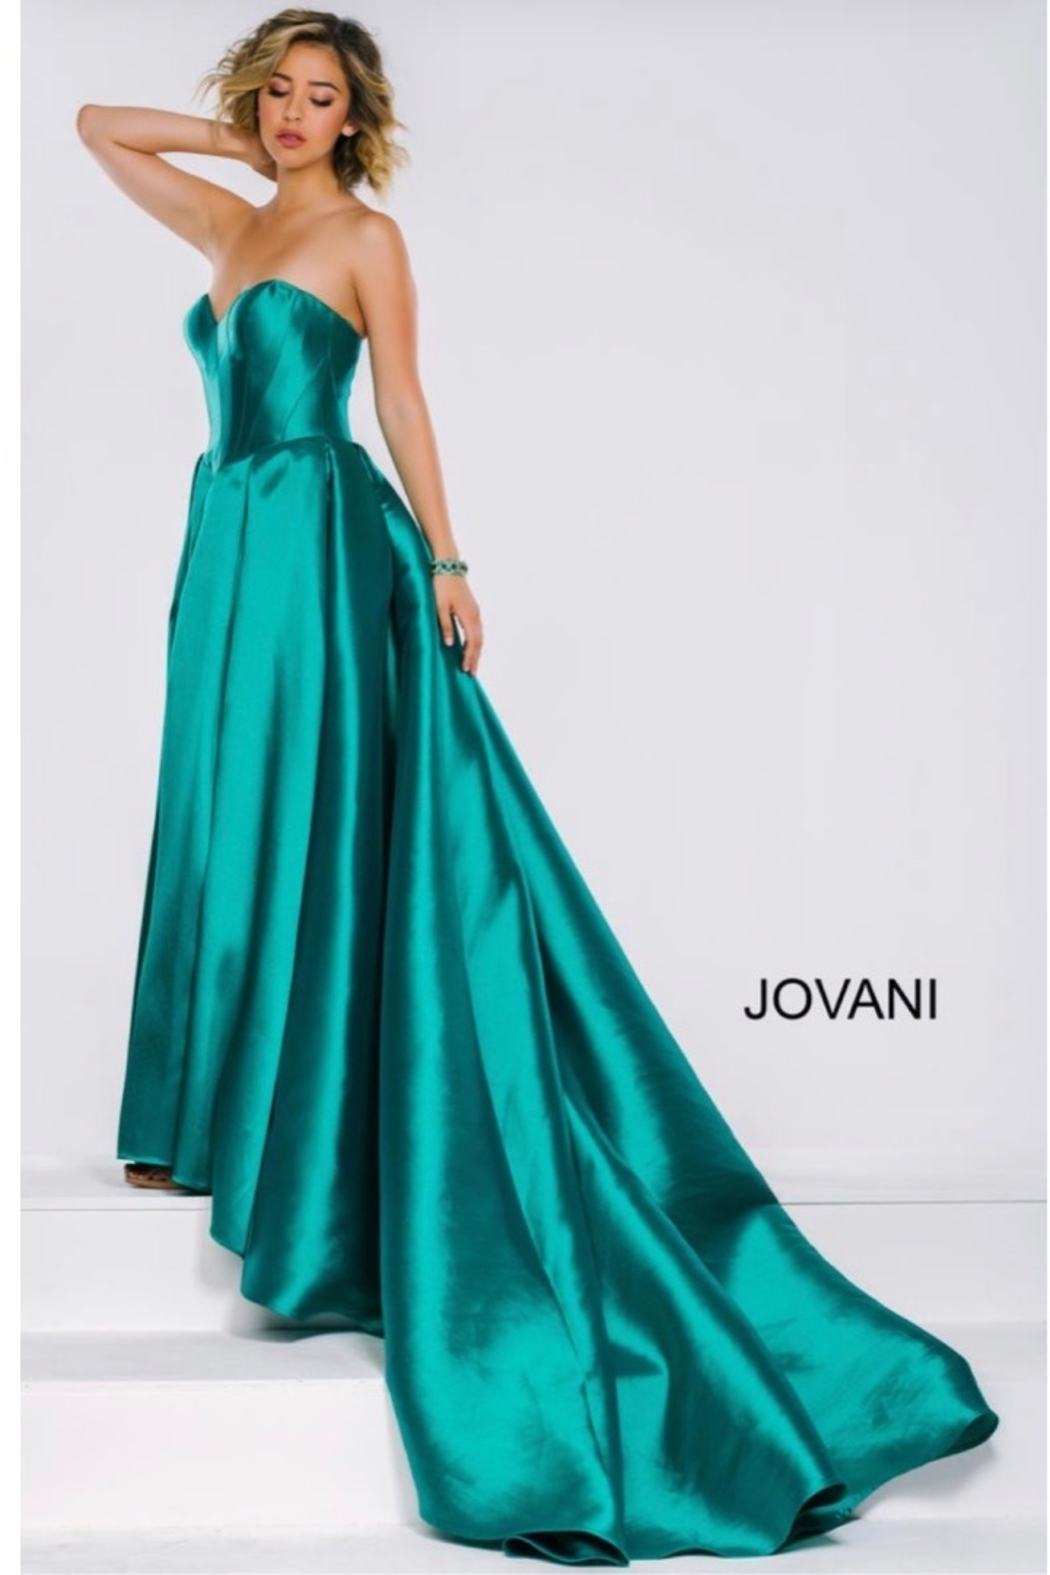 JOVANI FASHIONS EMERALD BUSTIER GOWN - Main Image